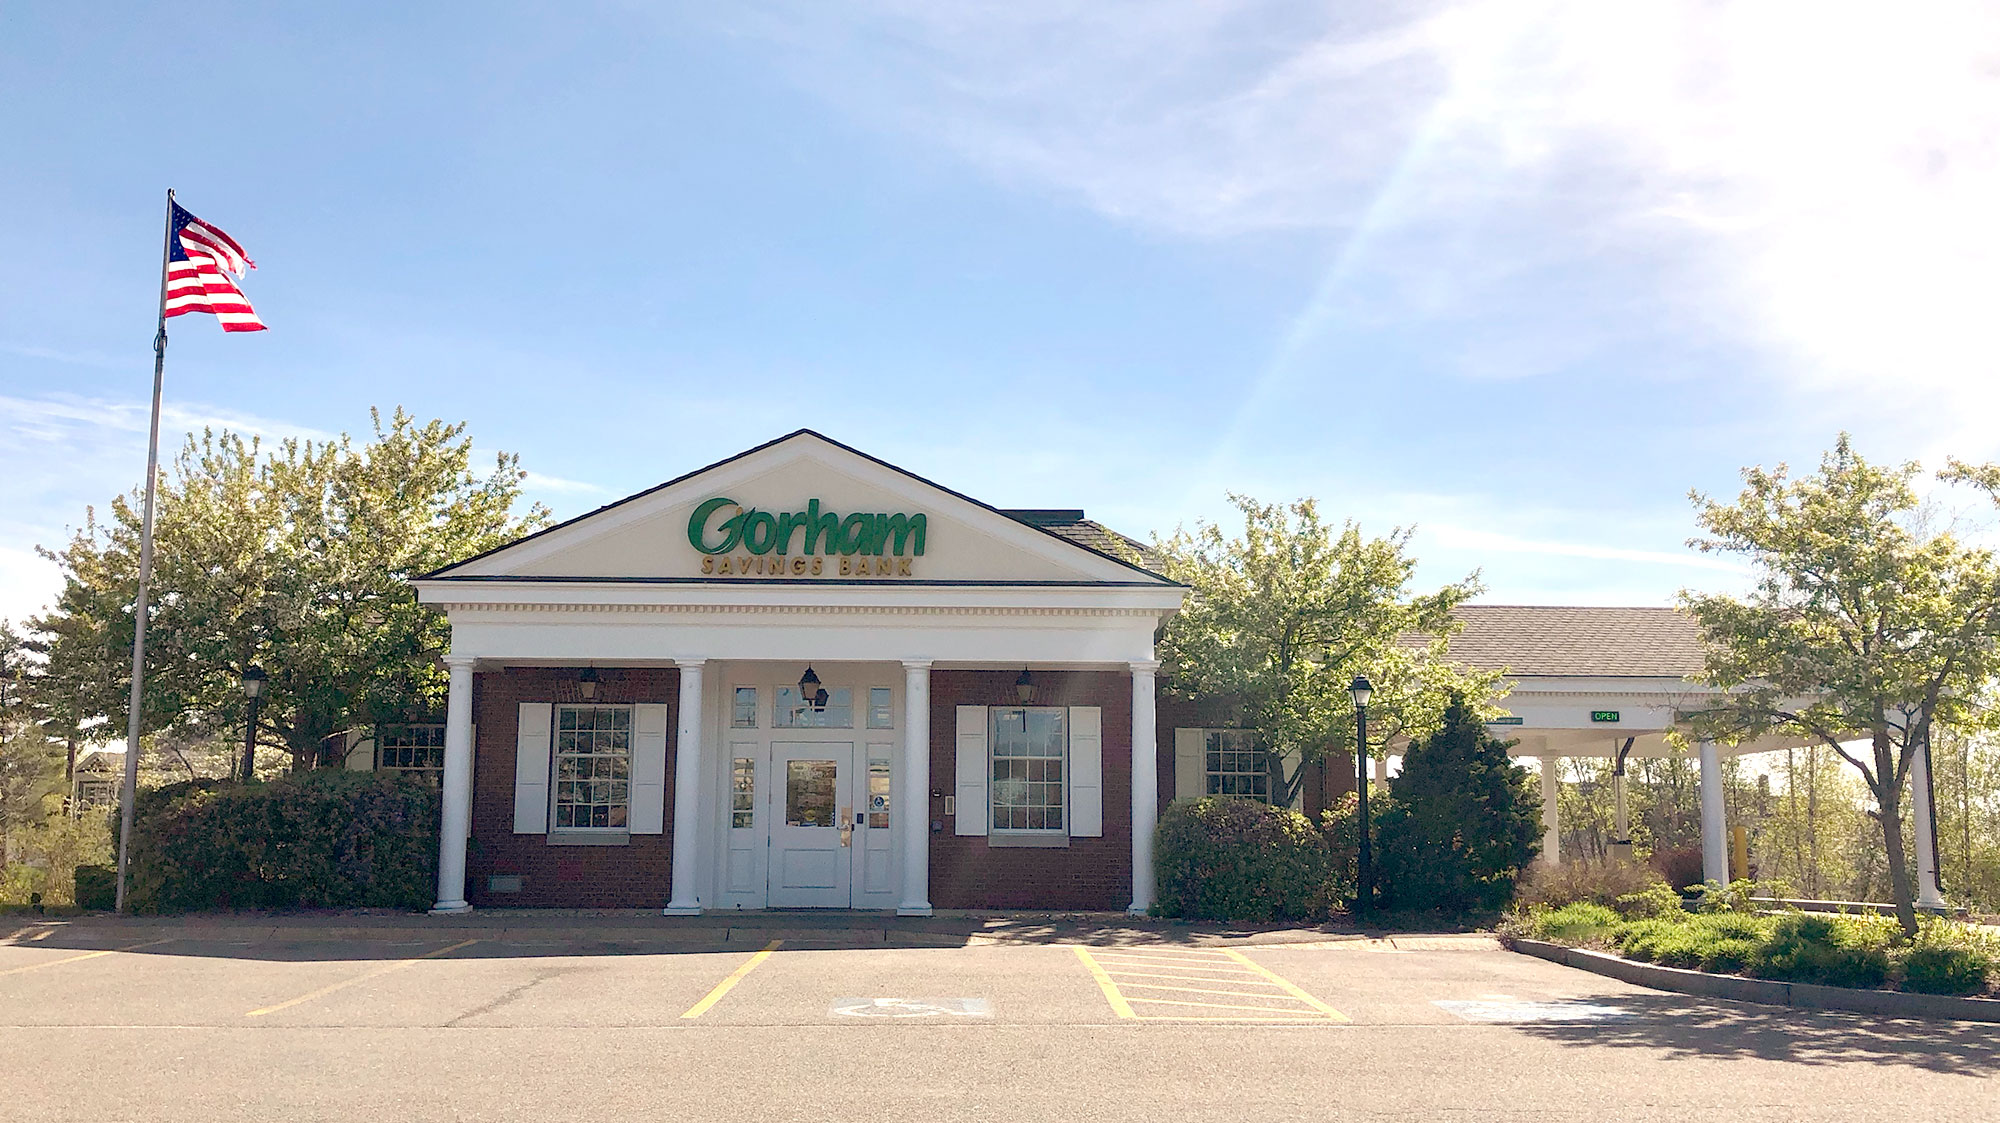 Gorham Savings Bank Scarborough location outside during the day